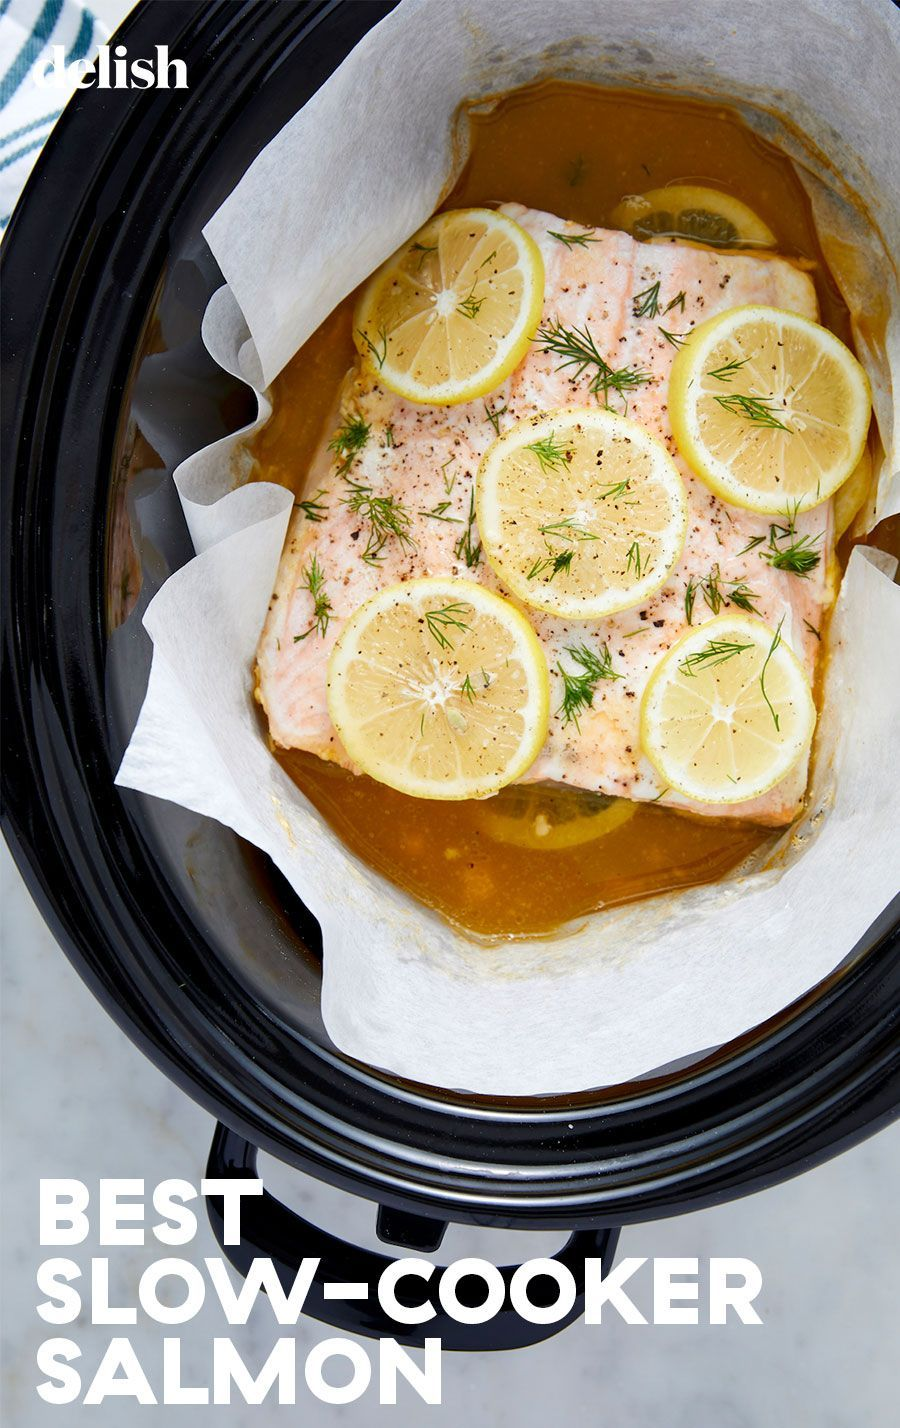 Psa You Can Make Amazing Salmon In Your Slow Cooker Recipe Crockpot Salmon Recipe Slow Cooker Salmon Crockpot Recipes Slow Cooker